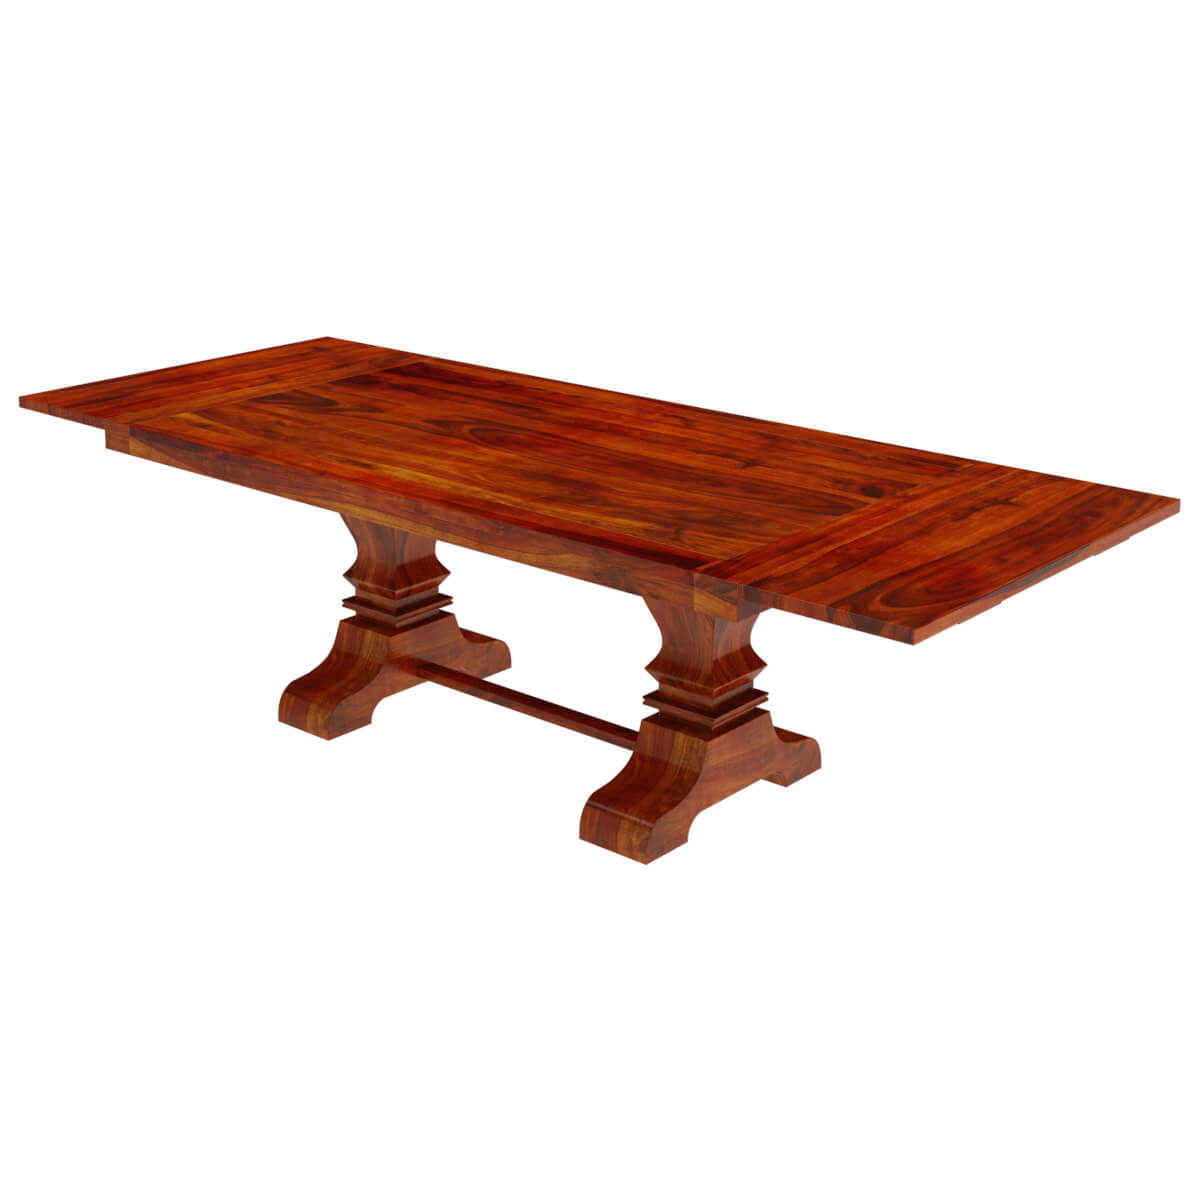 Solid wood large trestle pedestal dining table with extension Trestle dining table